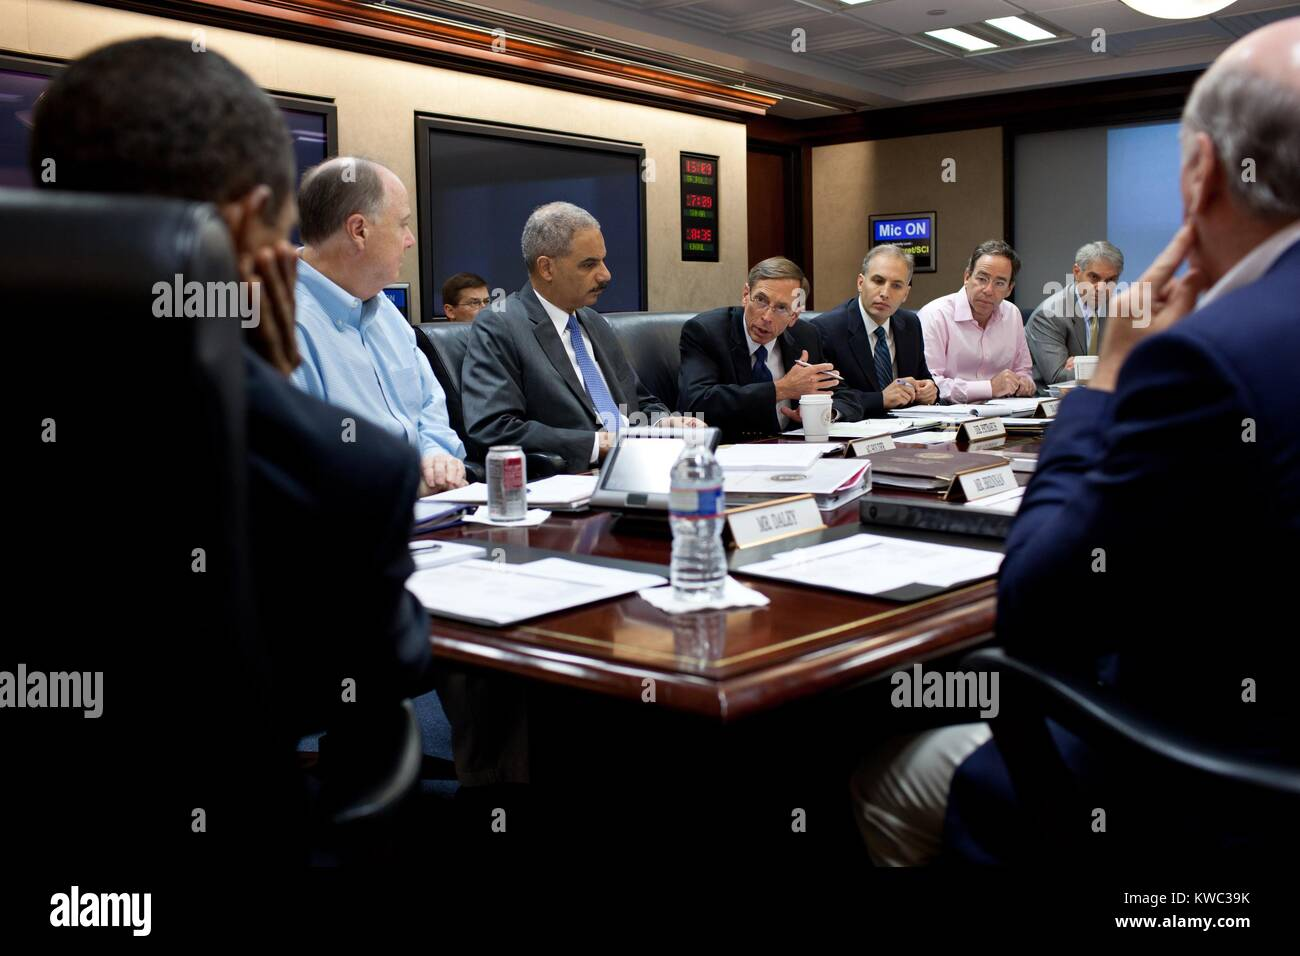 CIA Director David Petraeus speaking during a National Security meeting as Obama (left) listens. Situation Room - Stock Image